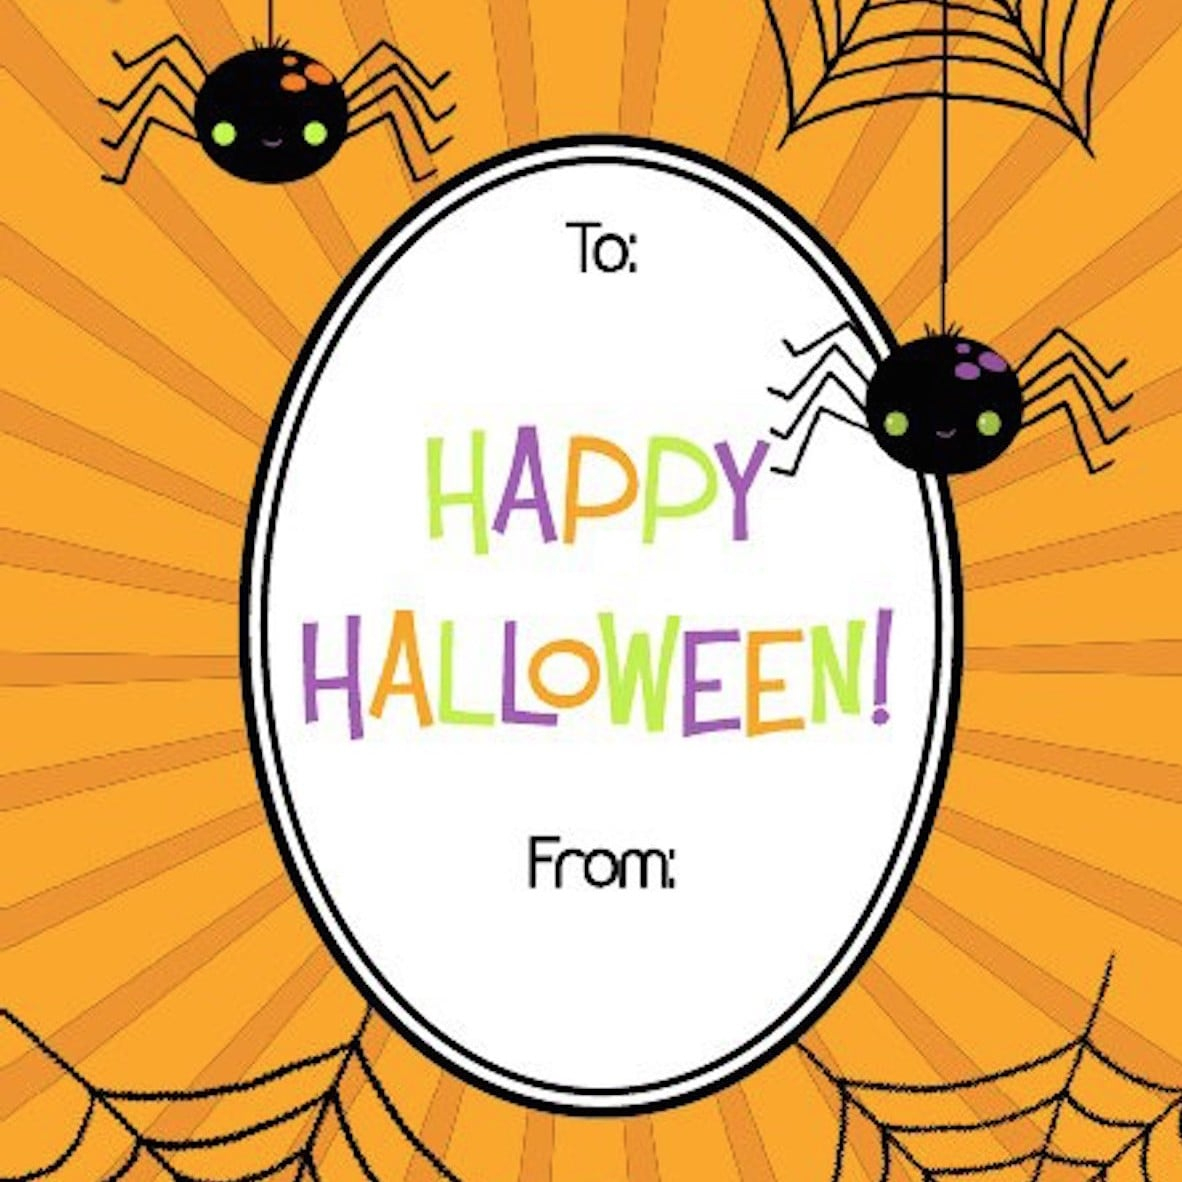 Free Printable Halloween Gift Tags | Popsugar Smart Living - Free Printable Halloween Tags